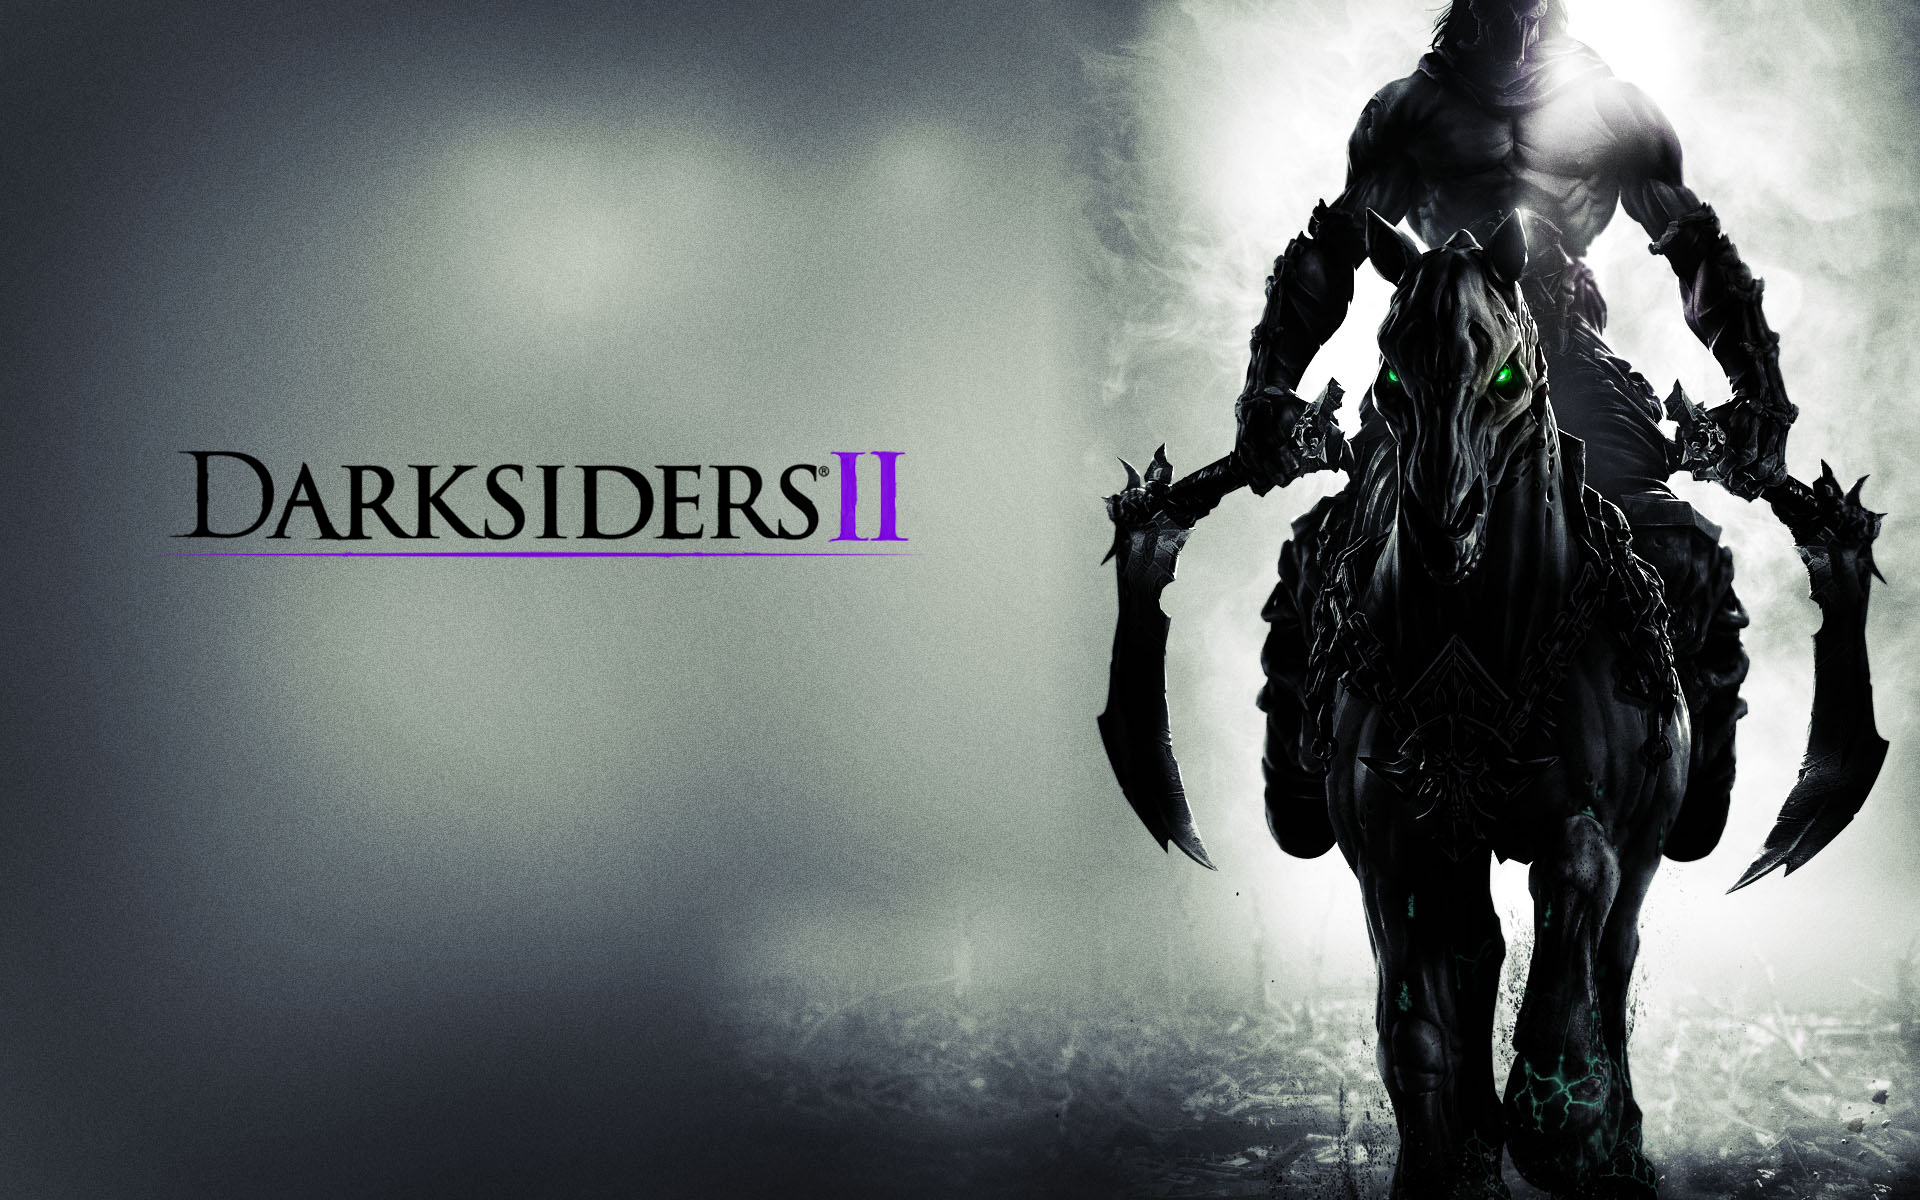 New Darksiders II: Last Salvation TV Commercial